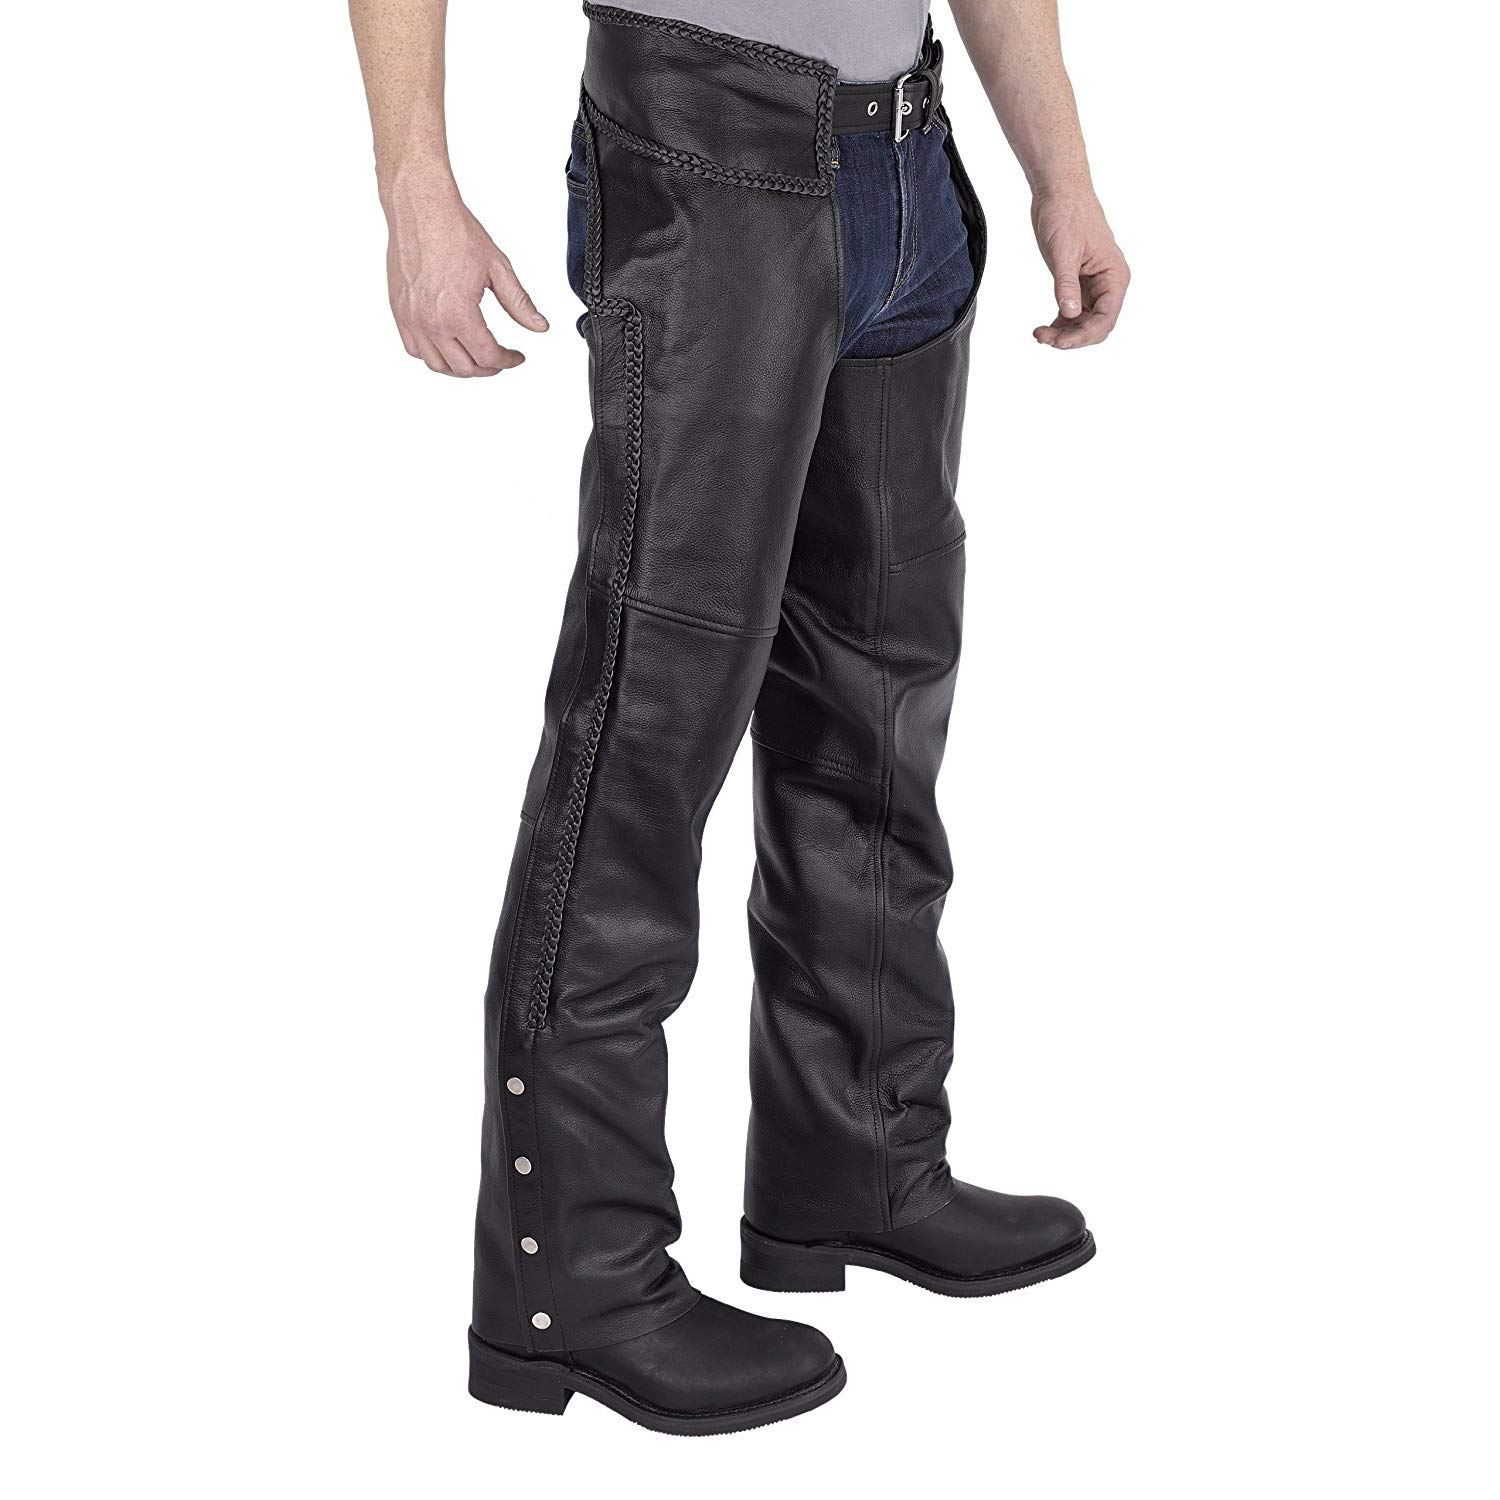 Viking Cycle Men's Braided Motorcycle Leather Chaps